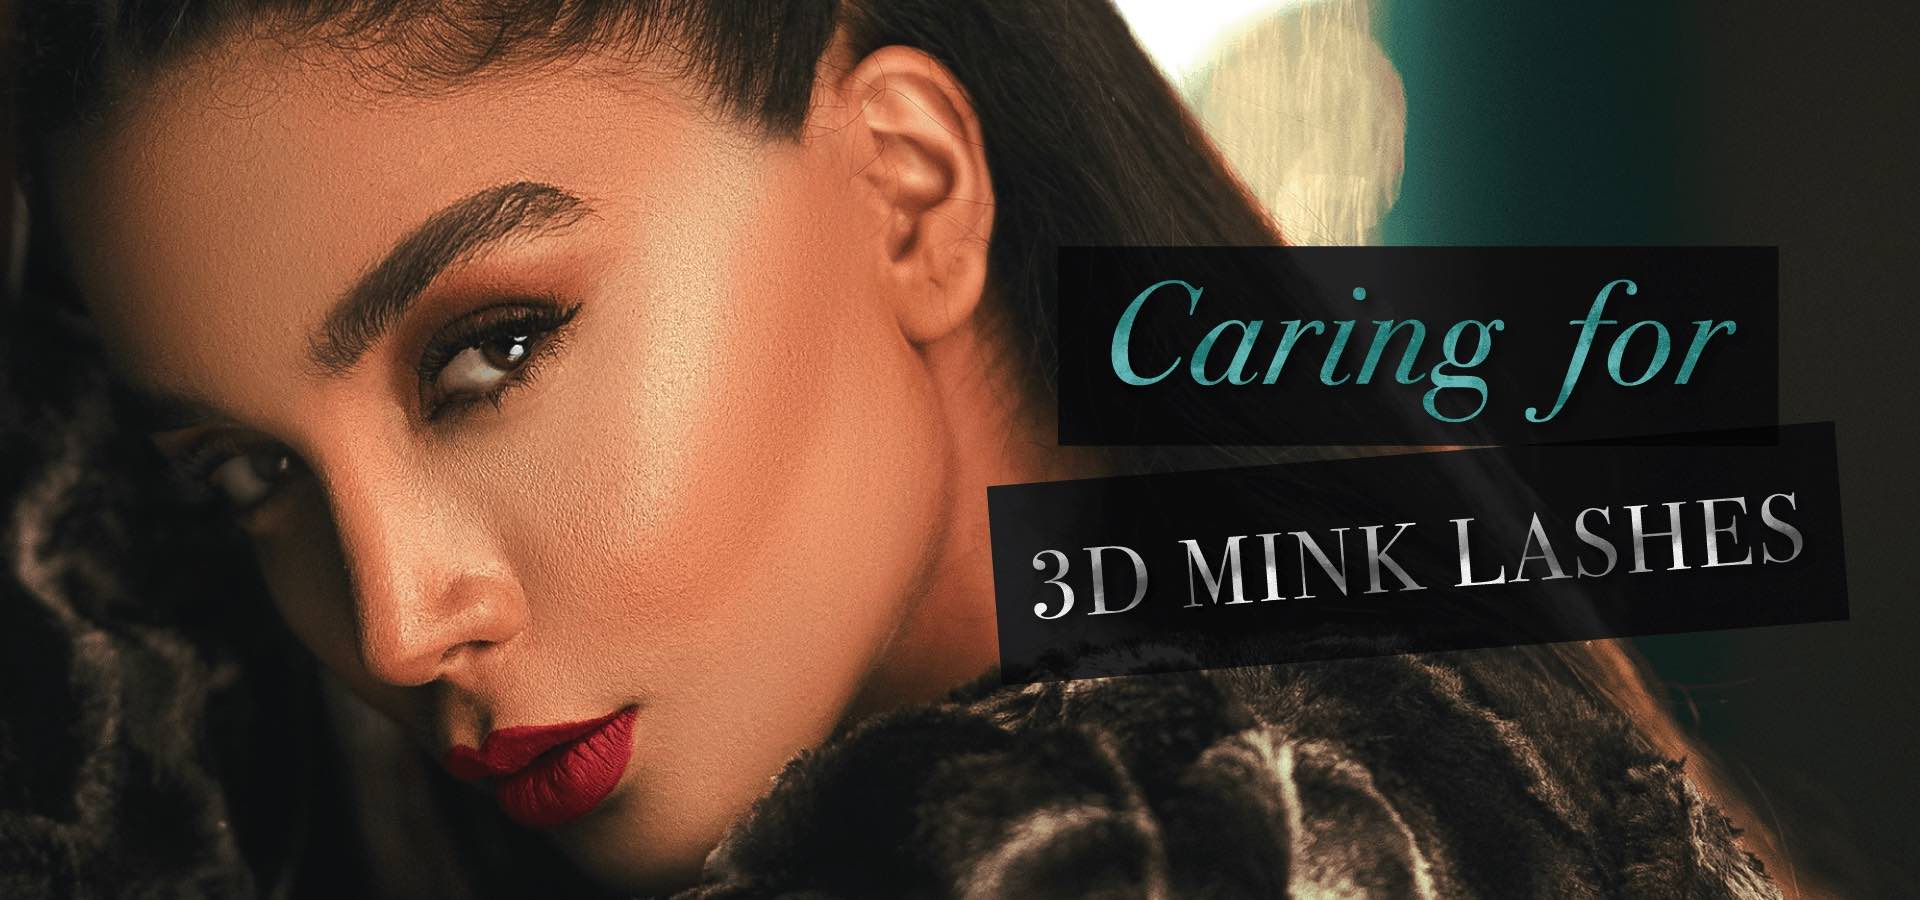 How to care for 3d mink lashes